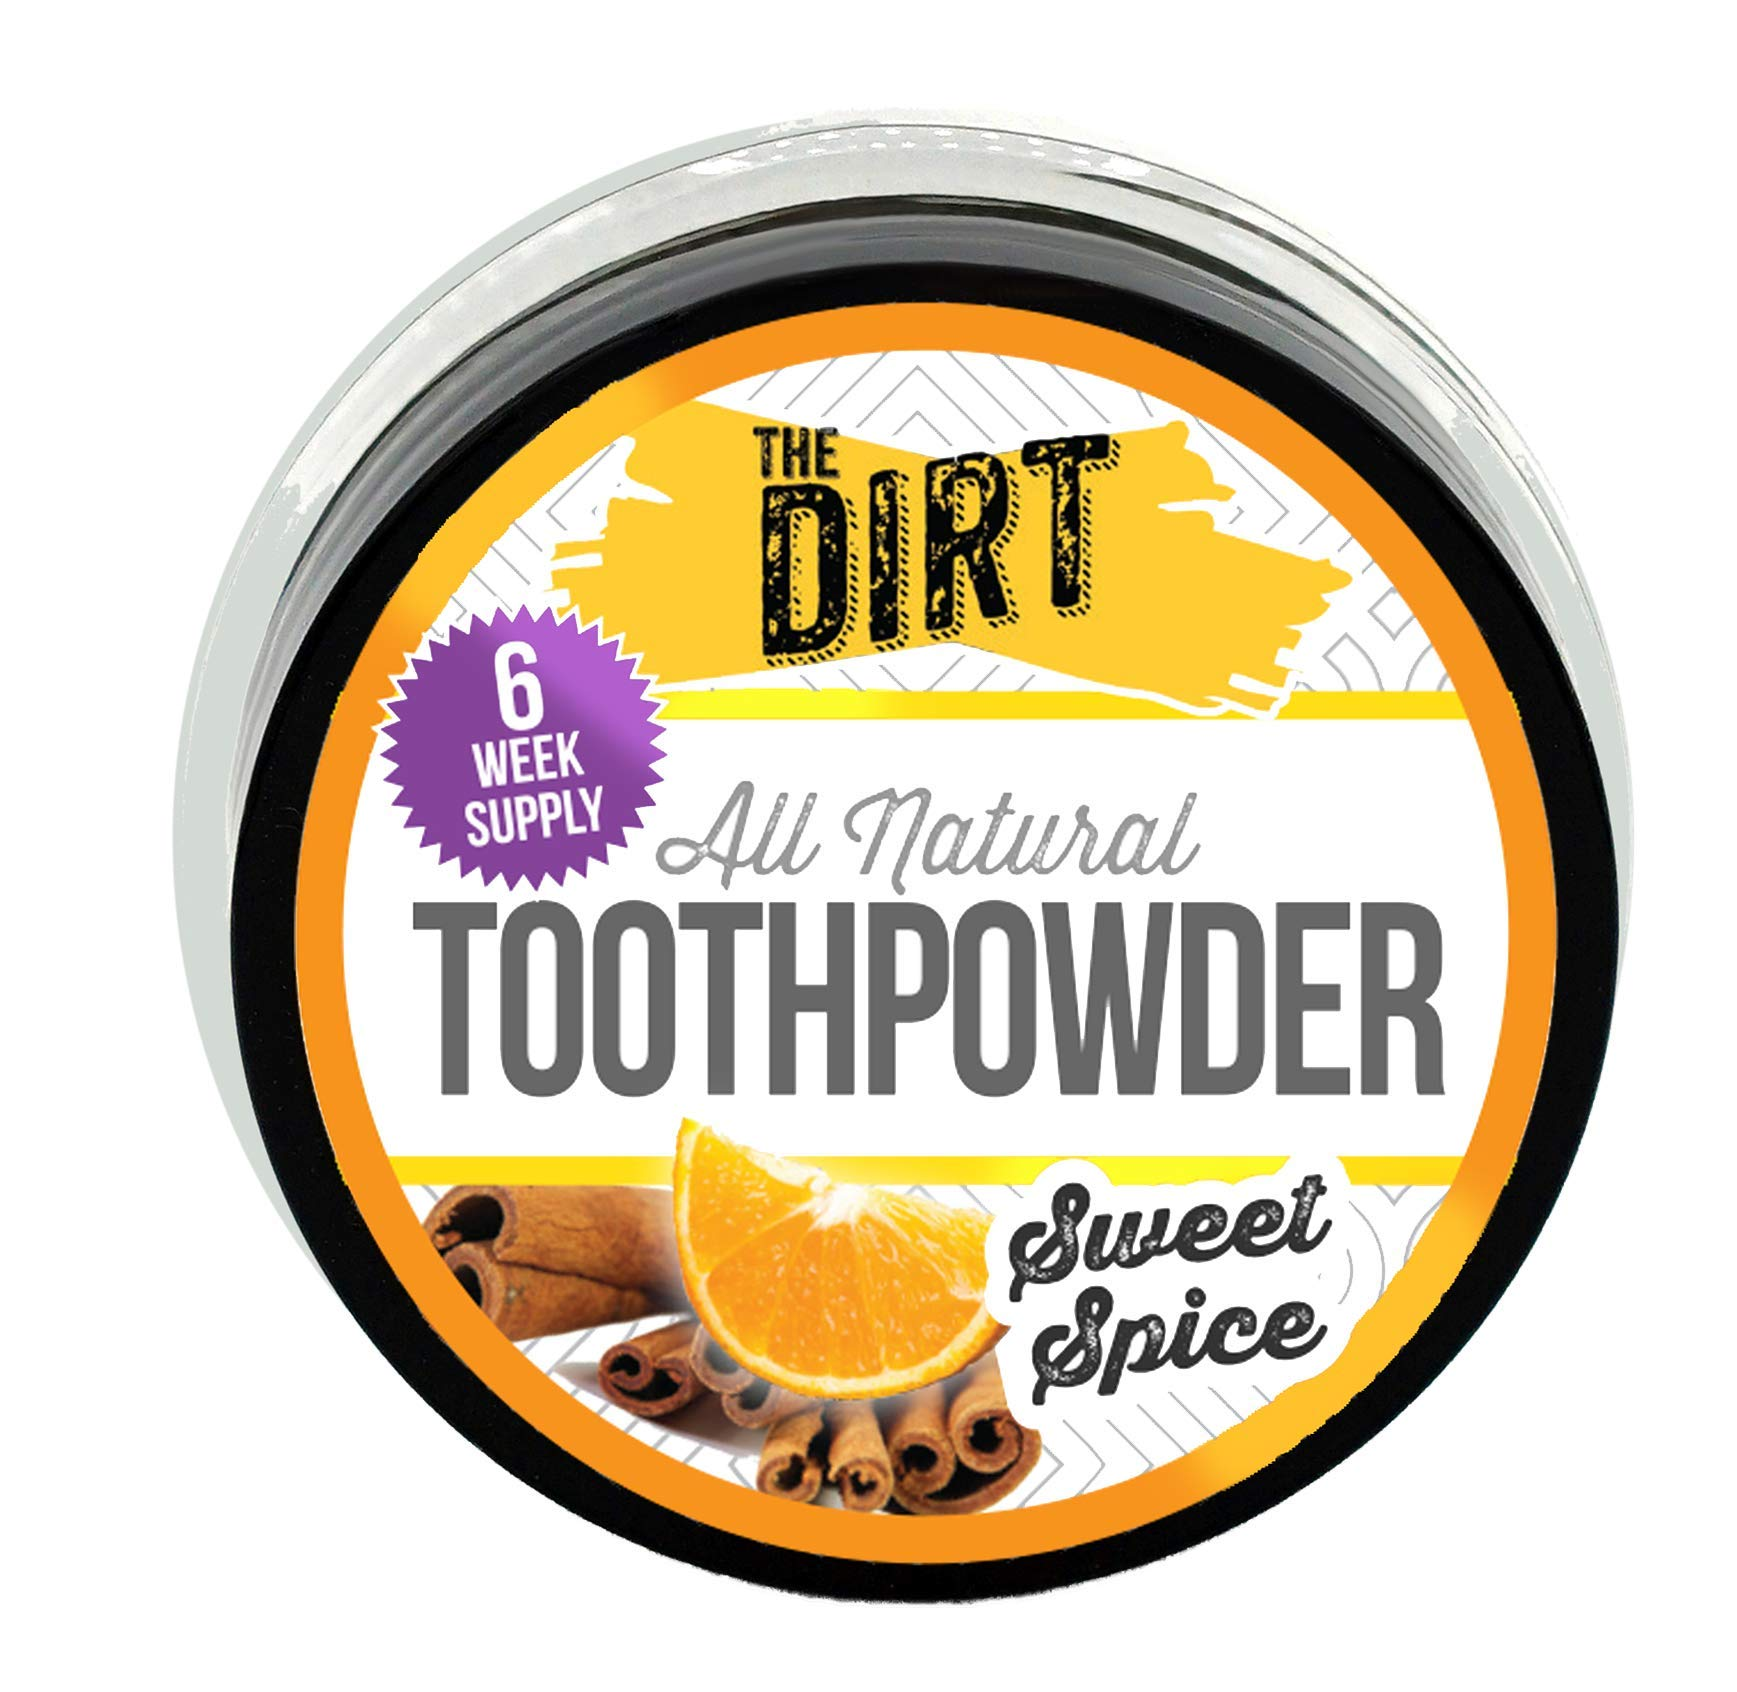 The Dirt All Natural Tooth Powder - Gluten & Fluoride Free Organic Teeth Whitening Powder with Essential Oils   No Added Sweeteners, Artificial Flavors or Colors - Sweet Spice, 3 Month Supply